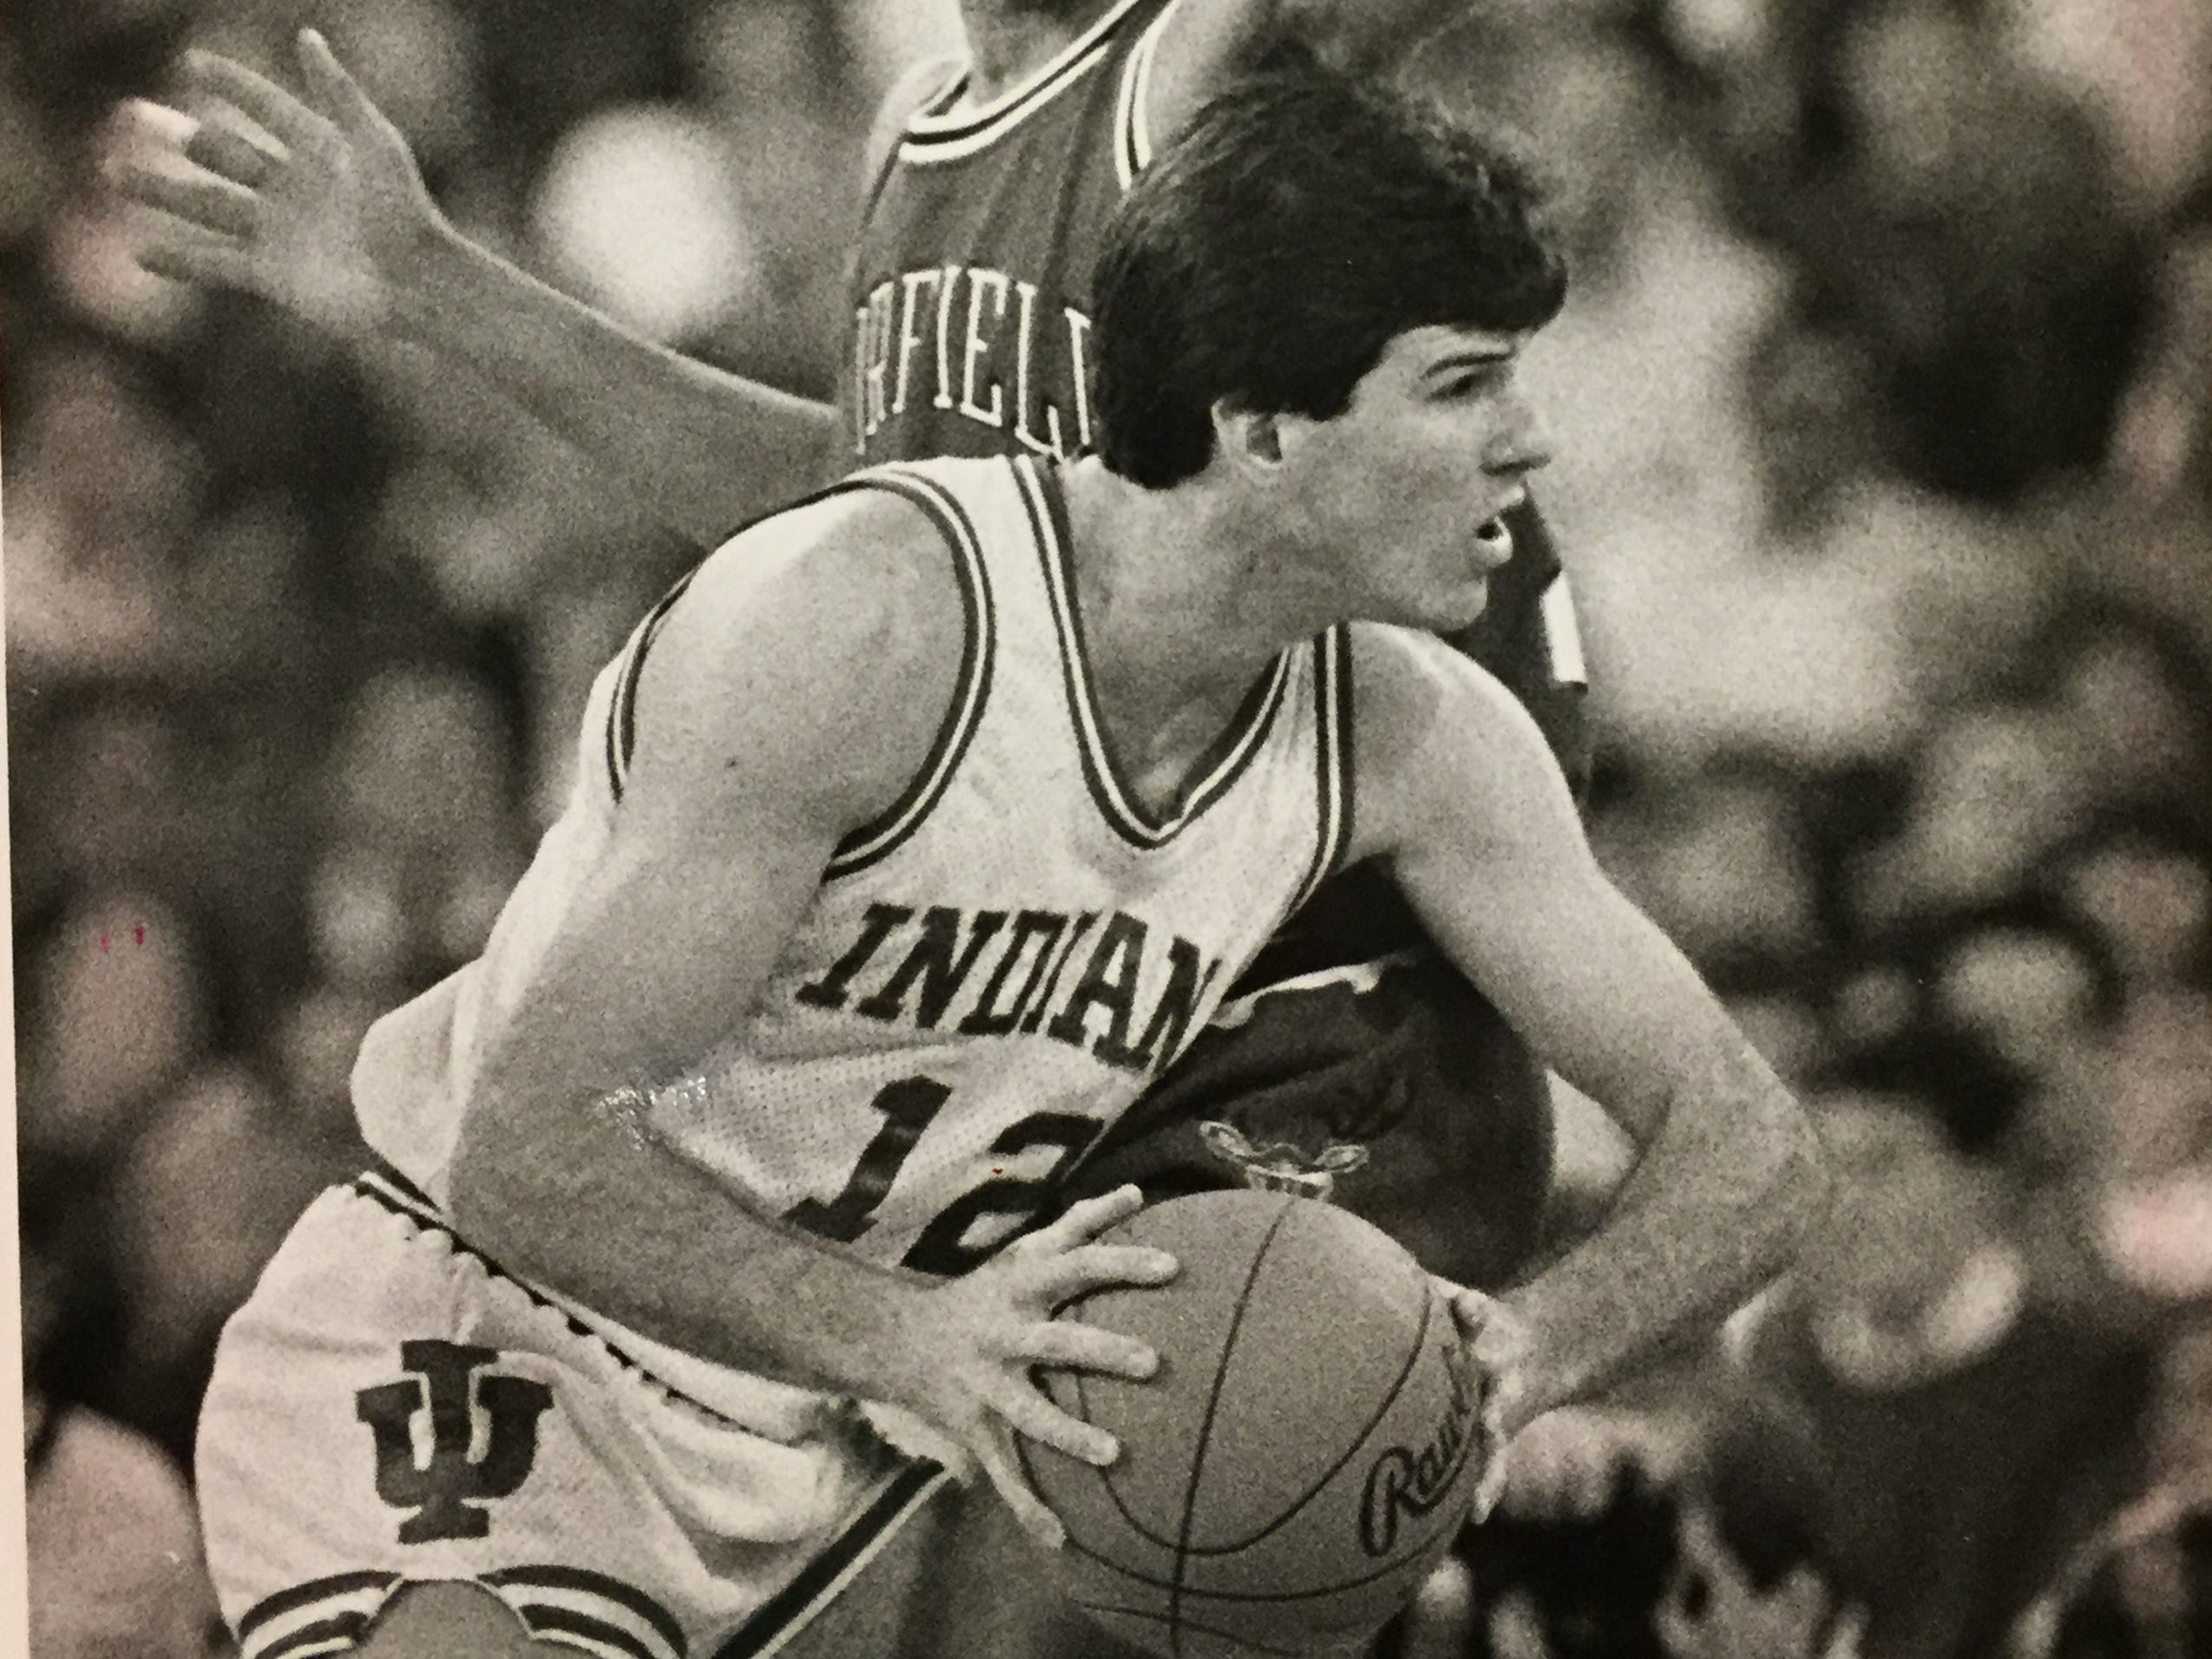 Steve Alford tries to push his way past Fairfield's A.J. Wynder during NCAA tournament first round game, March 12, 1987.